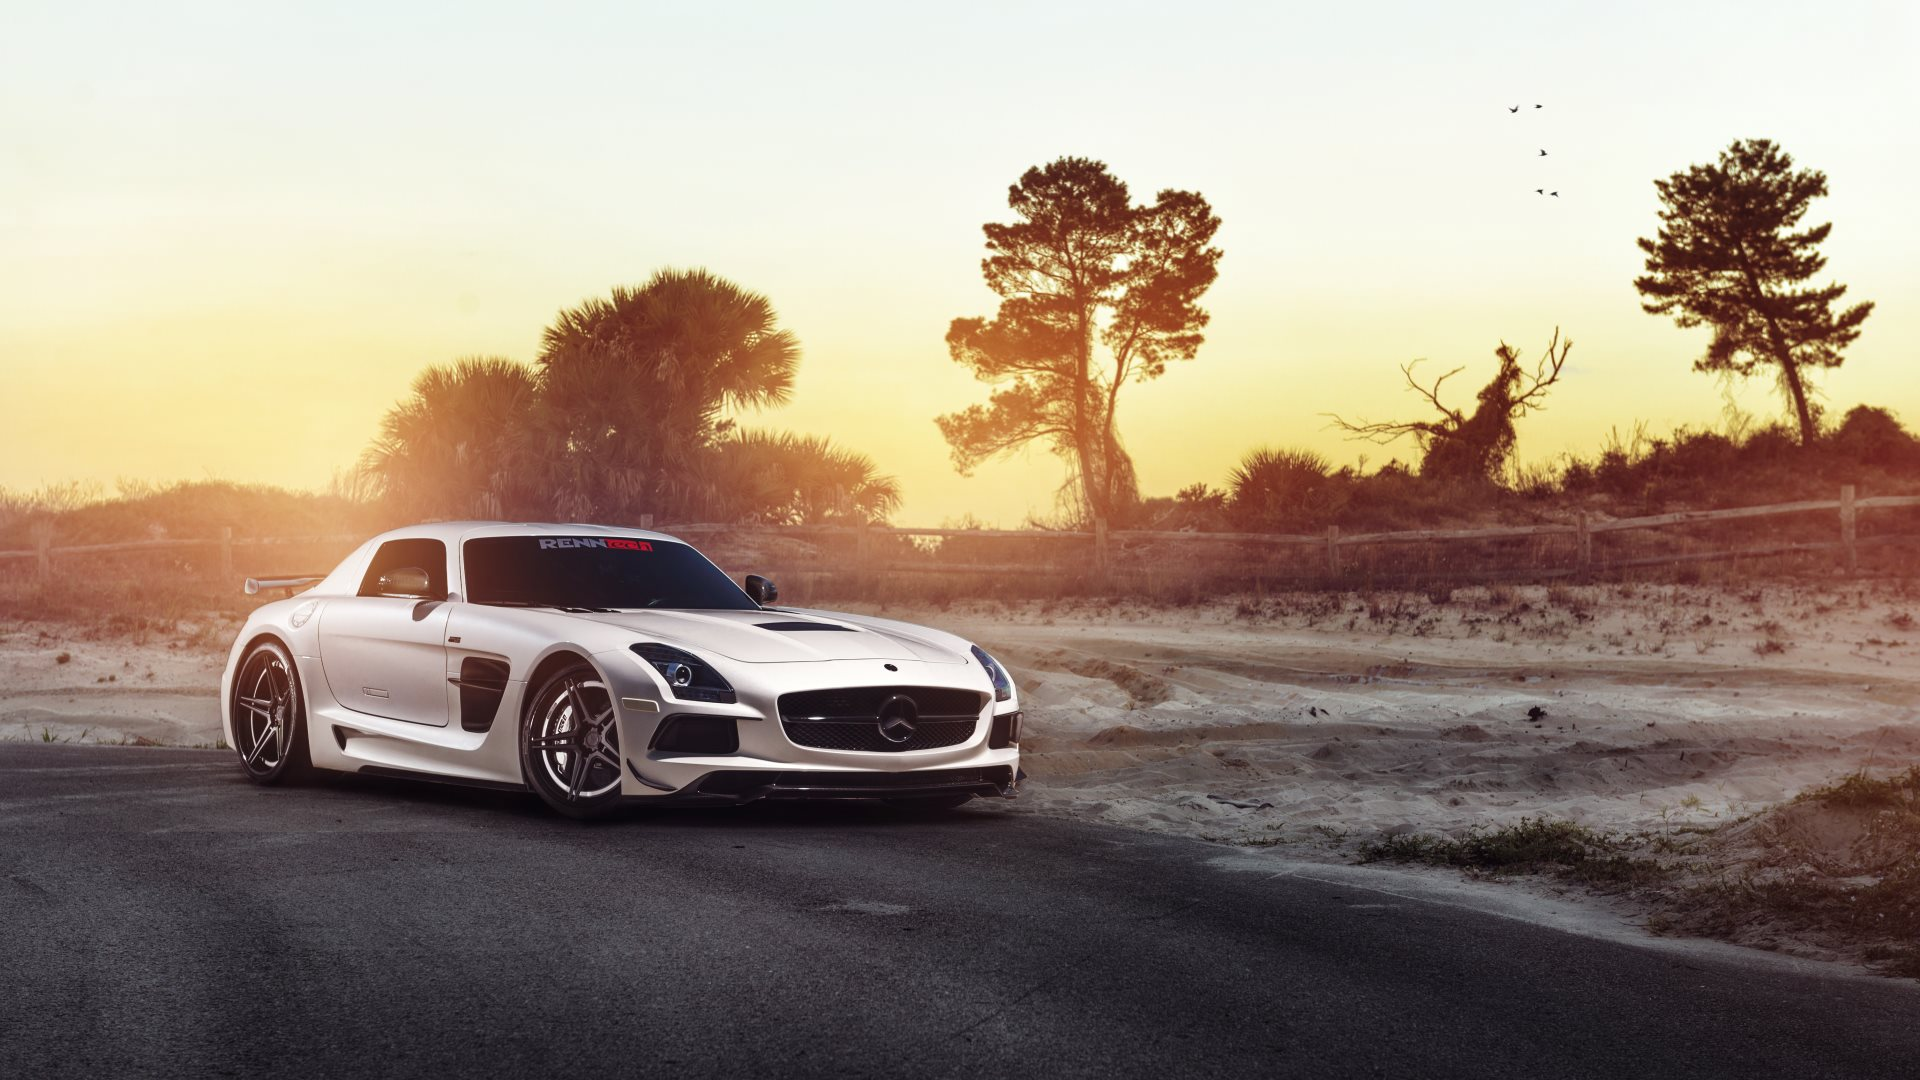 Sls Black Series >> 1920x1080 HD wallpapers. Best 1080p wallpapers for desktop and macbook